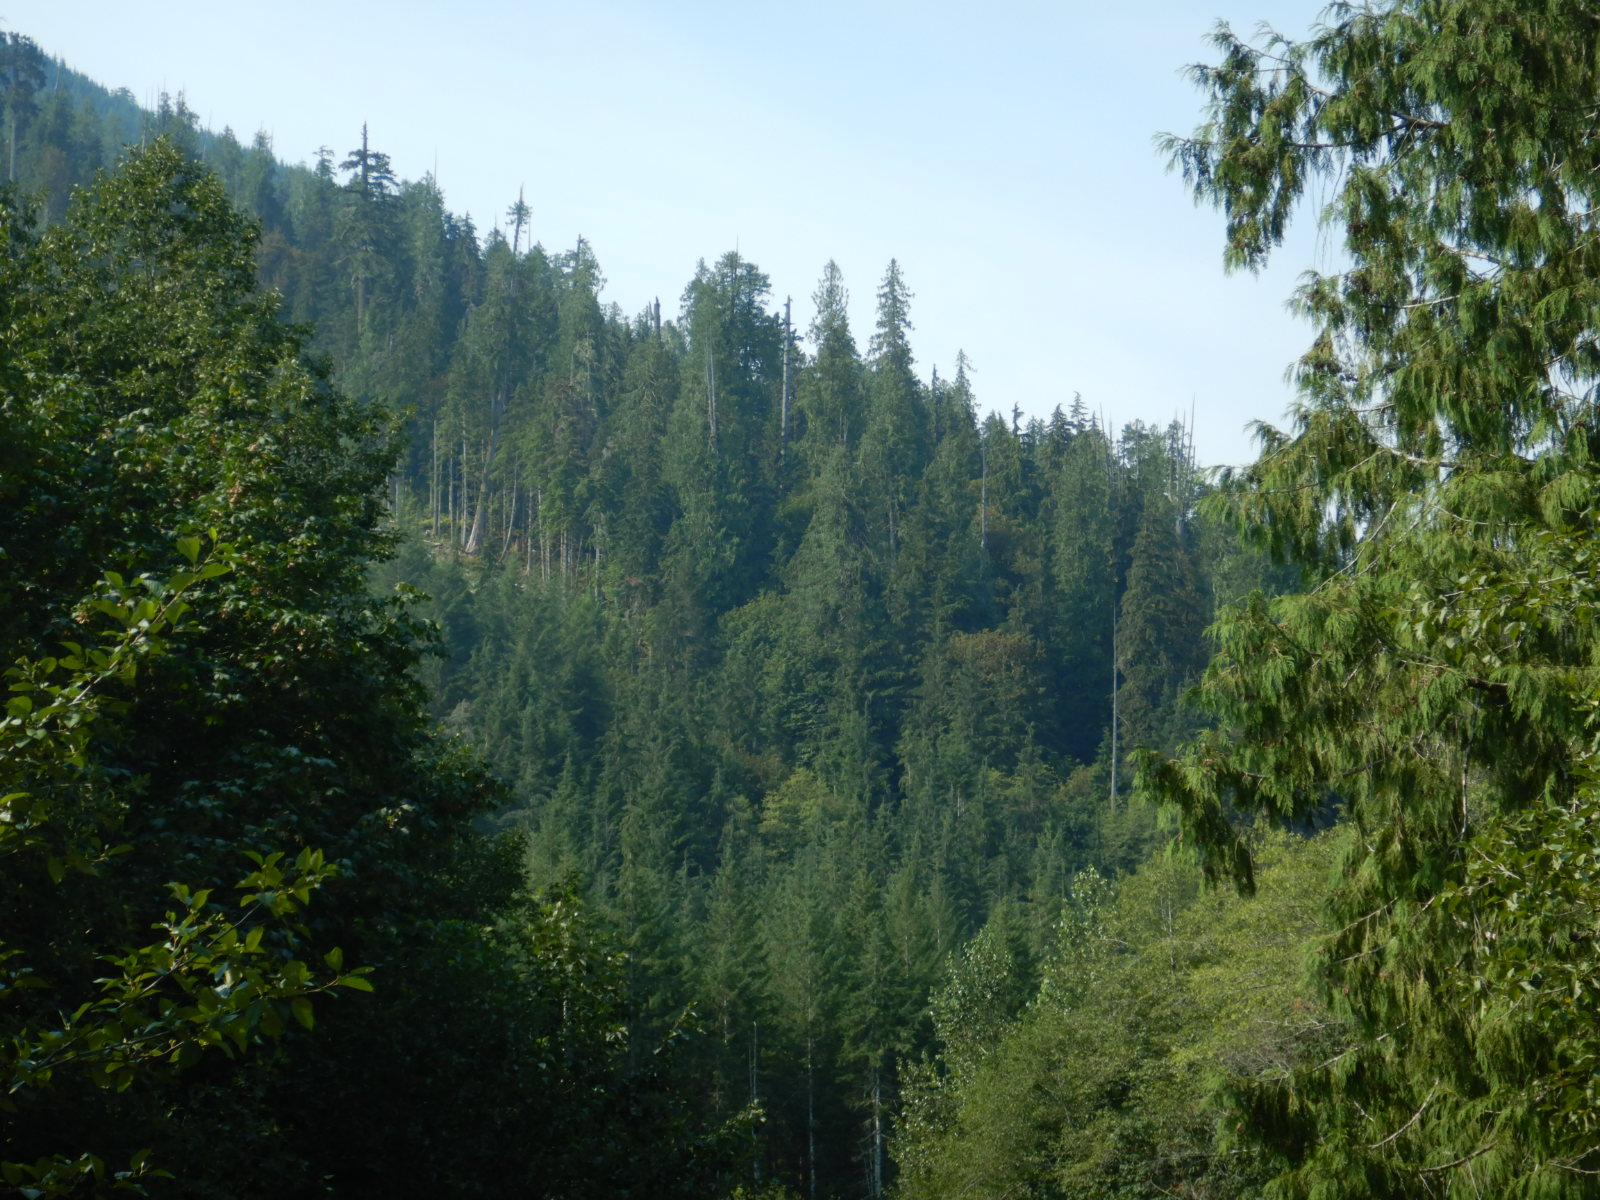 view of forest with tall trees on horizon